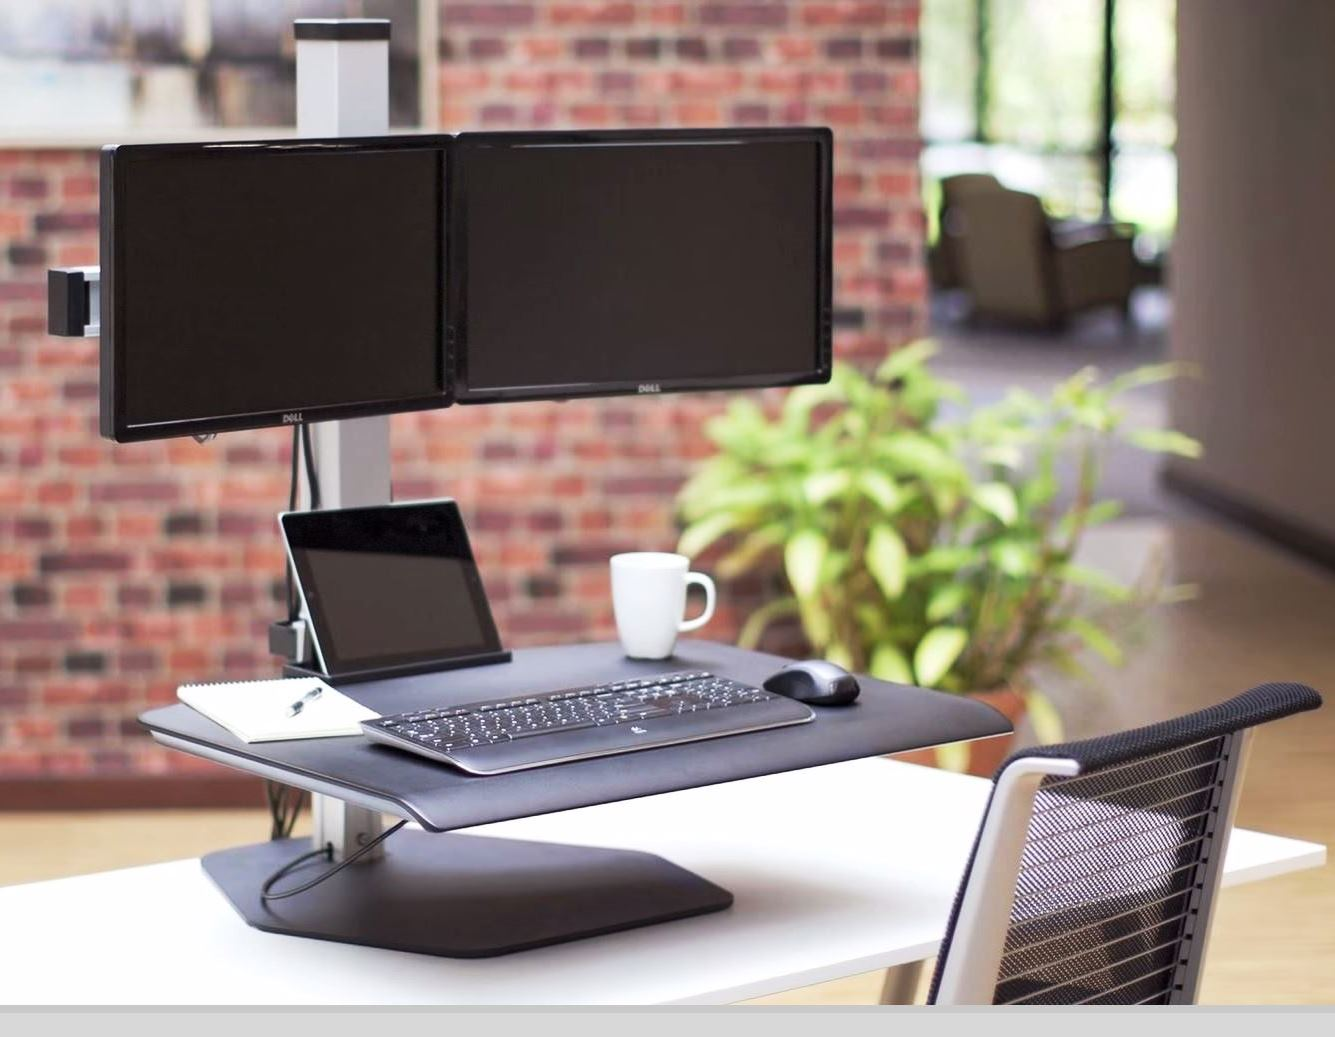 <b>Stand To Get Fit With Winston Manual Adjustable Dual Sit Stand Workstation #WSTN-2</i></b></font> <font color=#c60>Read More Below...</font>